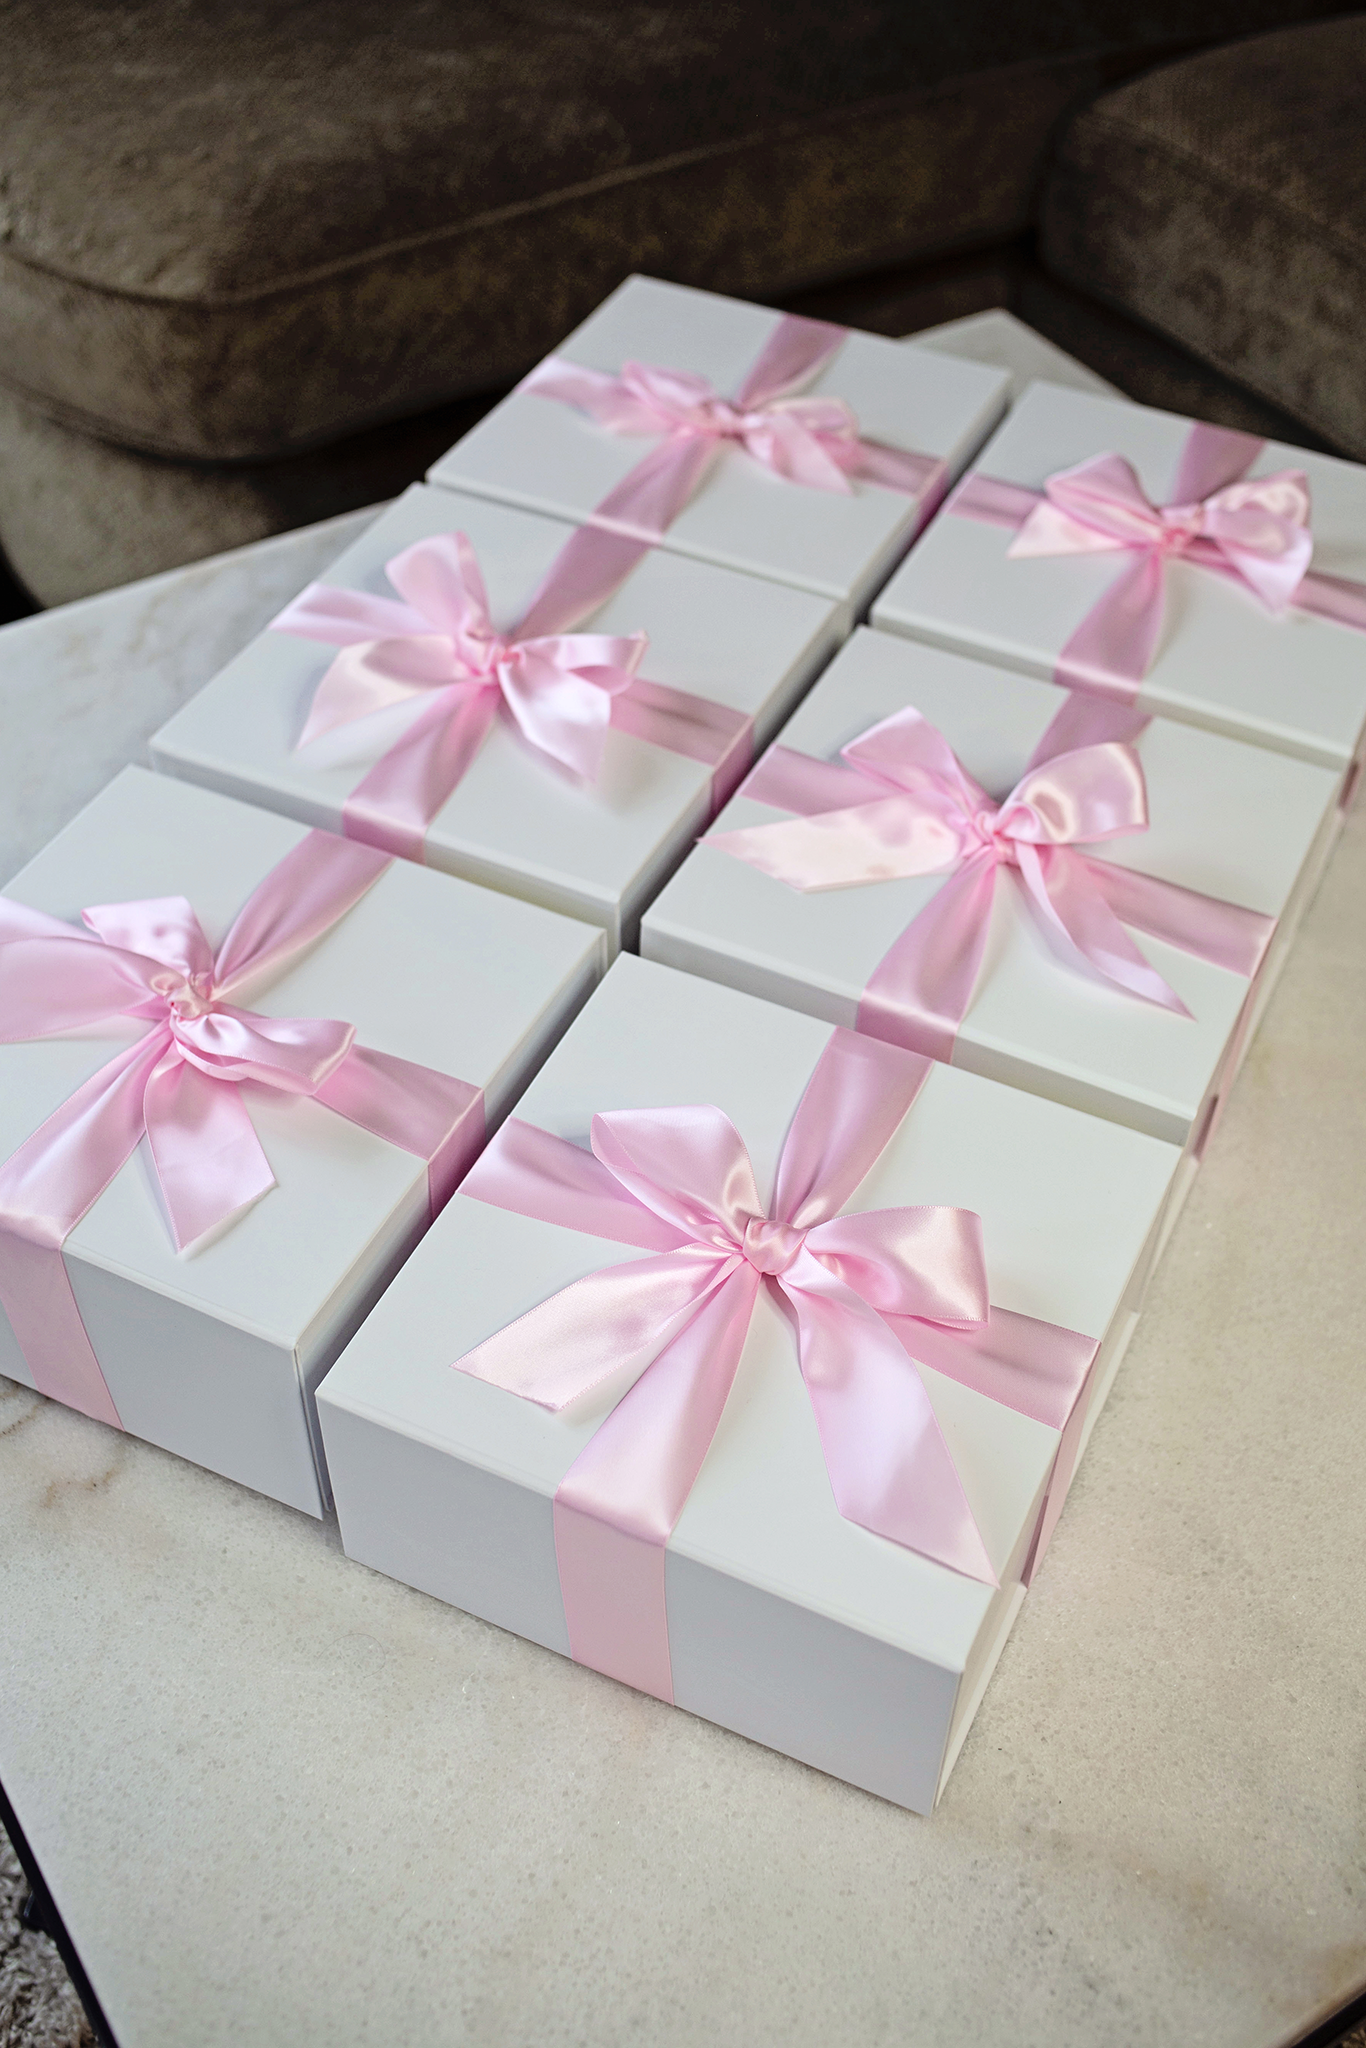 Finished gift boxes, wrapped with ribbon